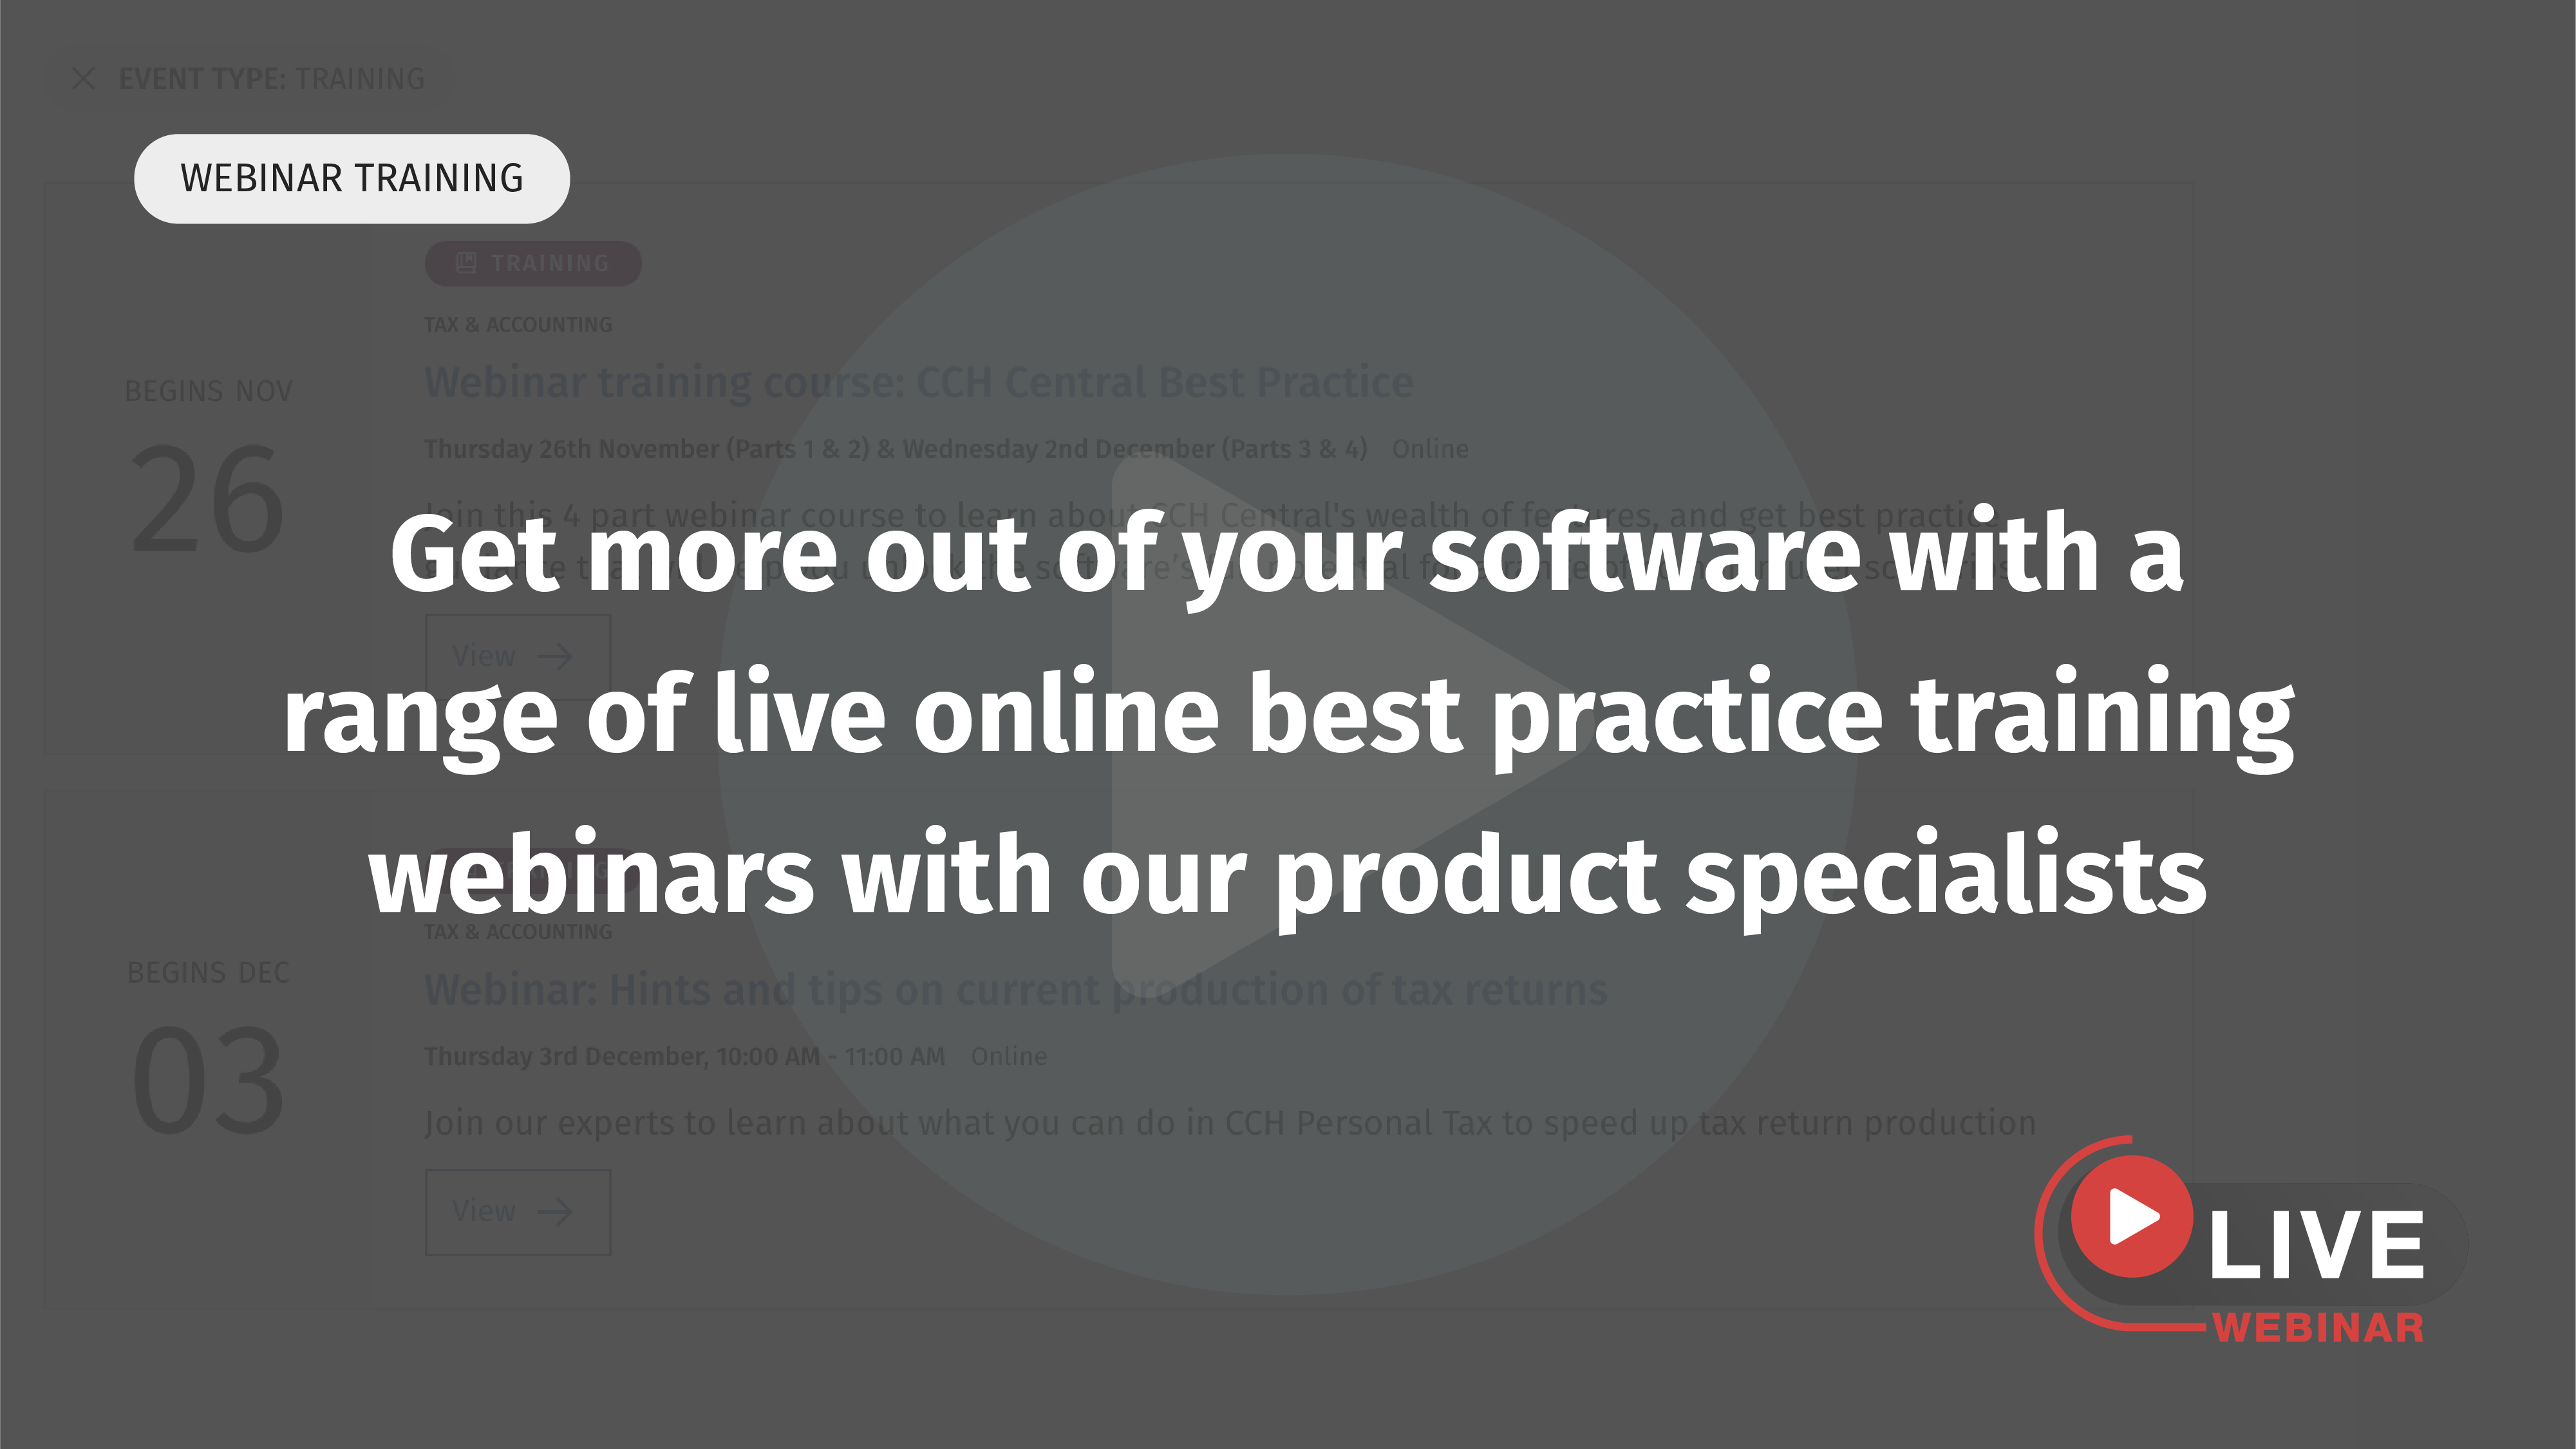 Live webinar training events